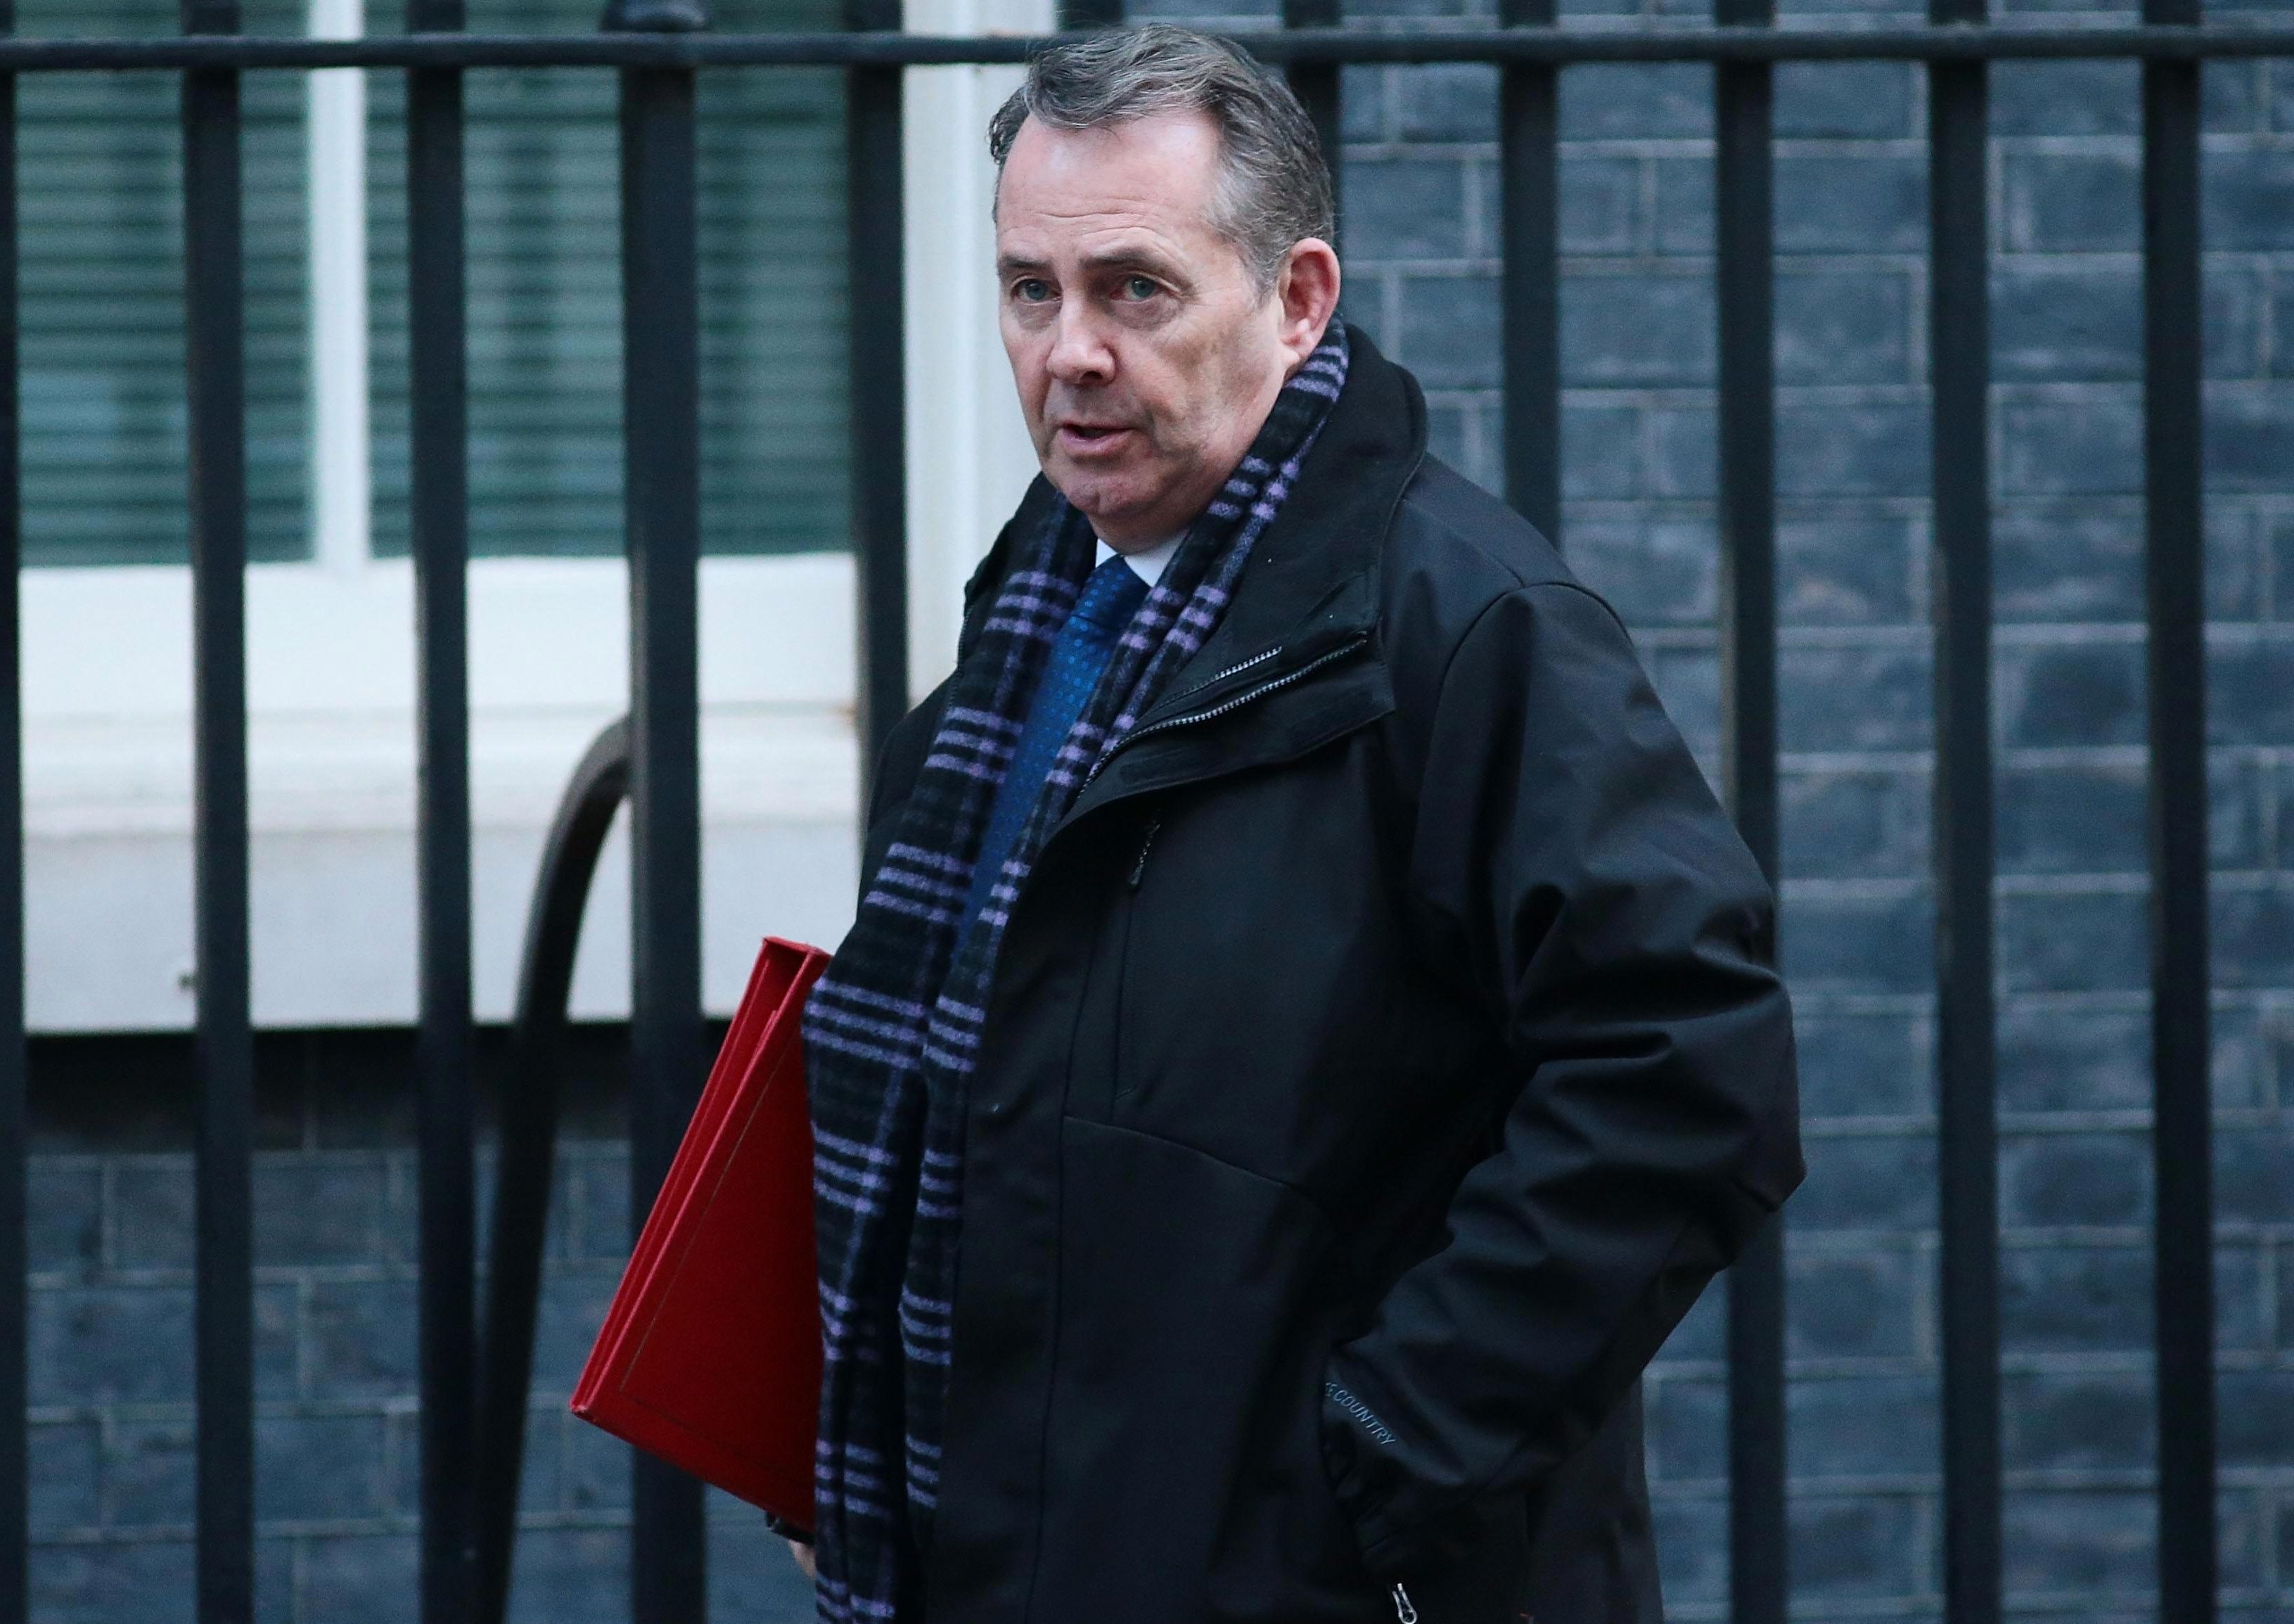 Liam Fox has accused MPs of plotting to steal Brexit from the British people after they inflicted another landmark defeat on the Government